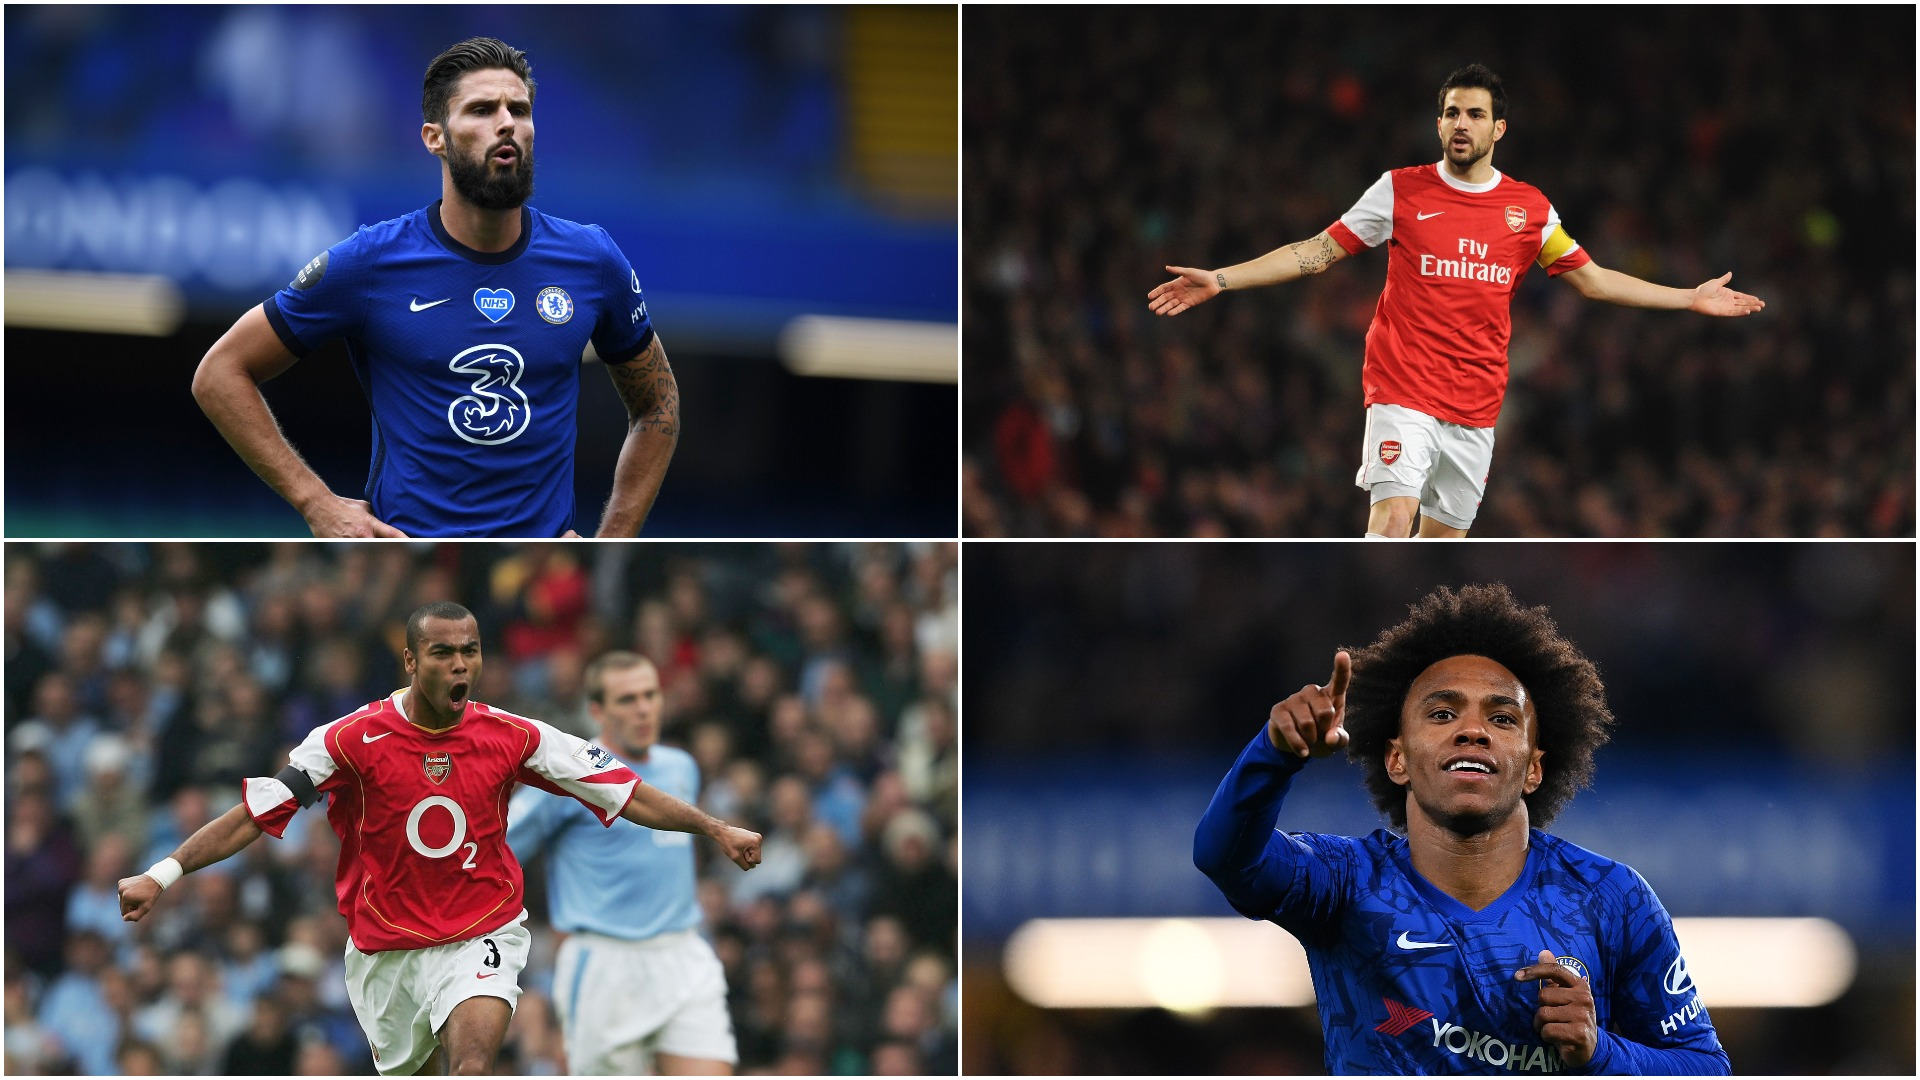 Willian to Arsenal: Cole, Fabregas, Giroud and the players to feature for the Gunners and Chelsea